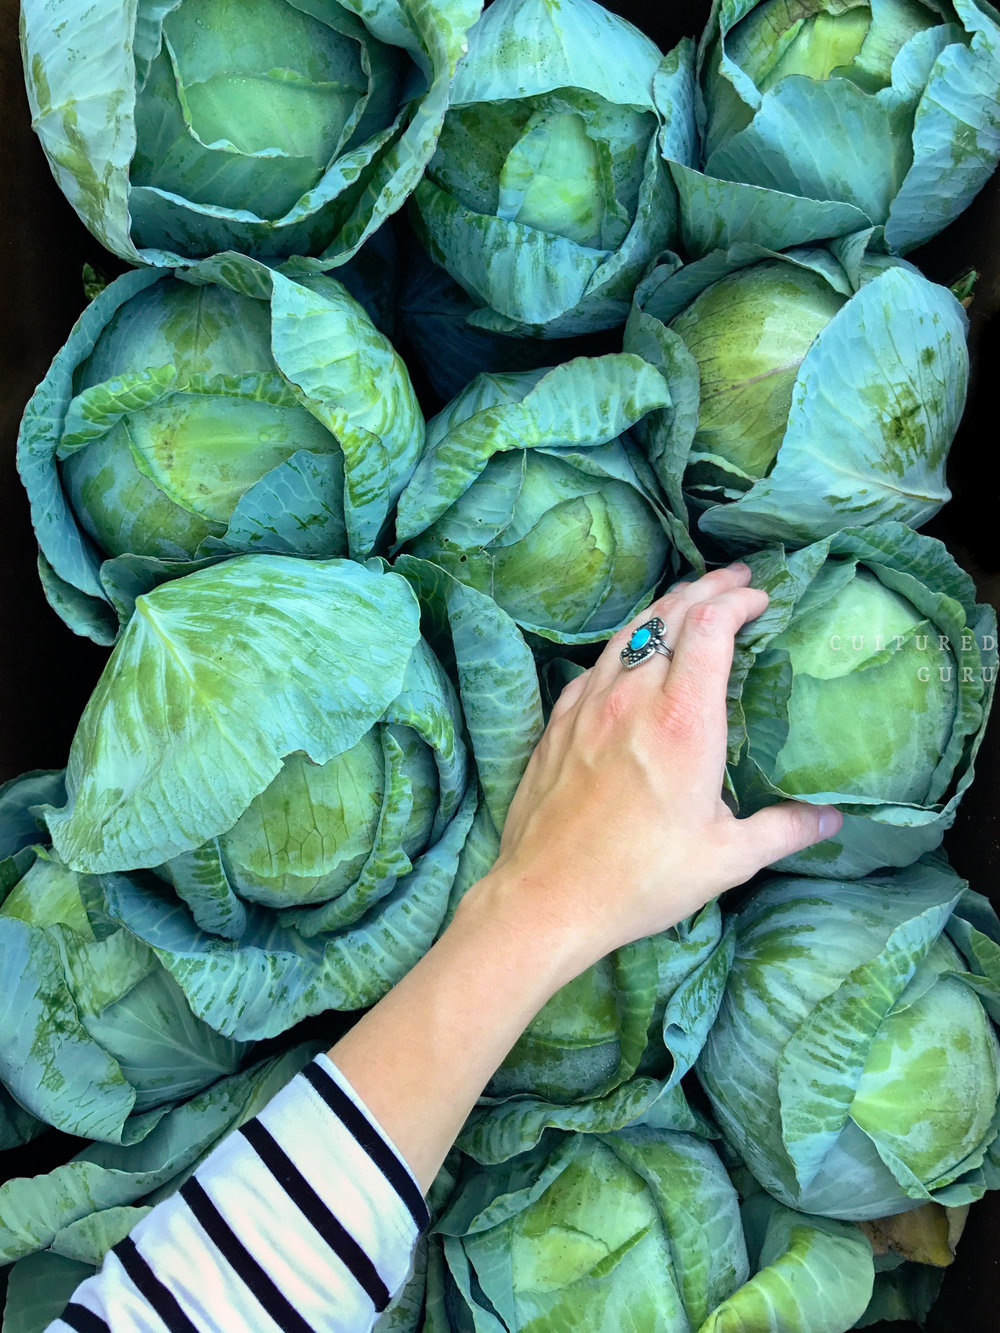 Raw Cabbage